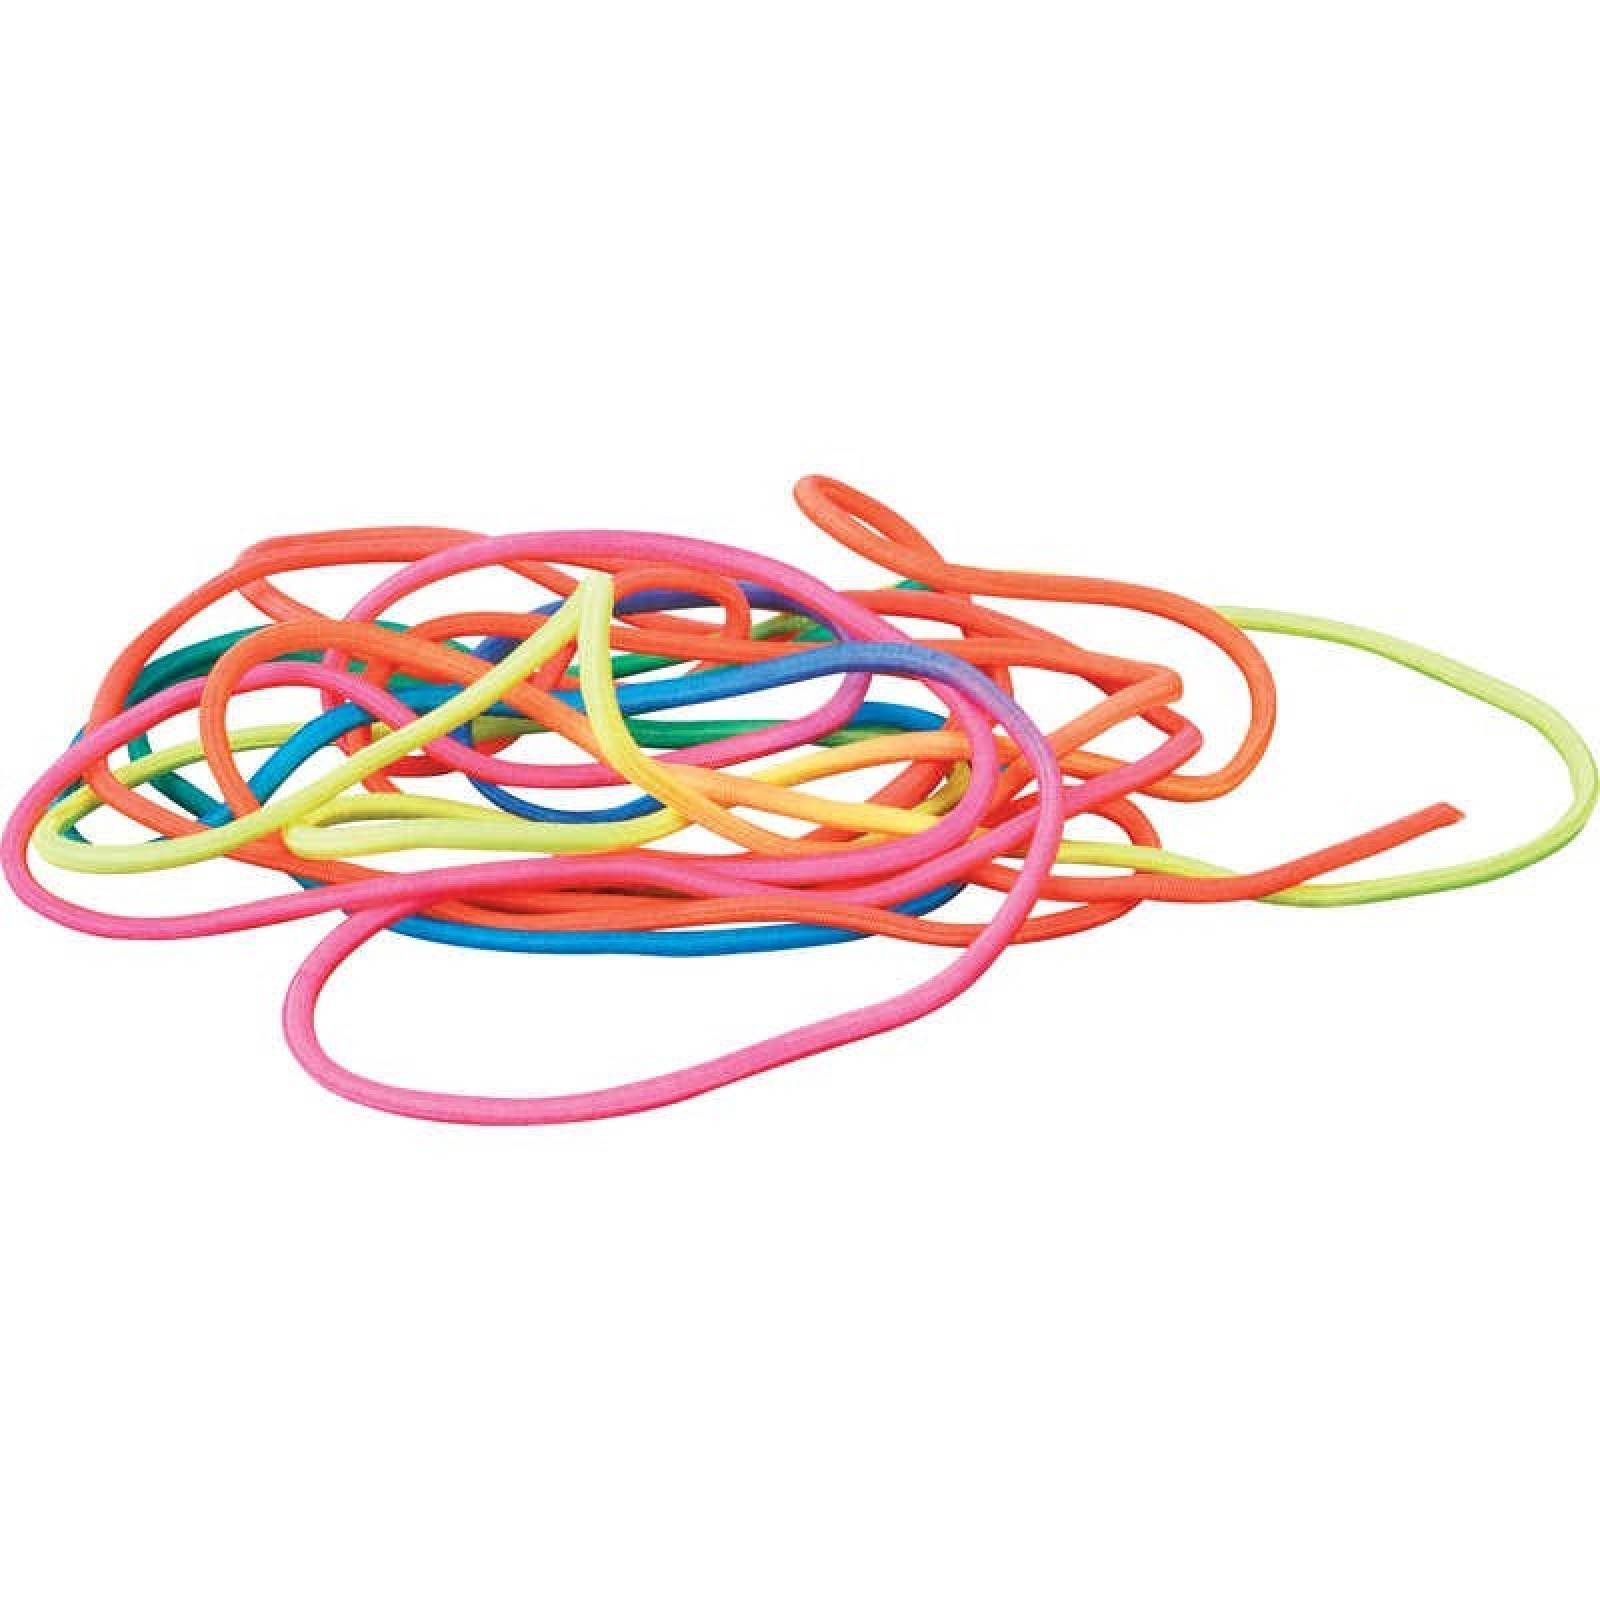 Elasticated French Skipping Rope 5+ thumbnails